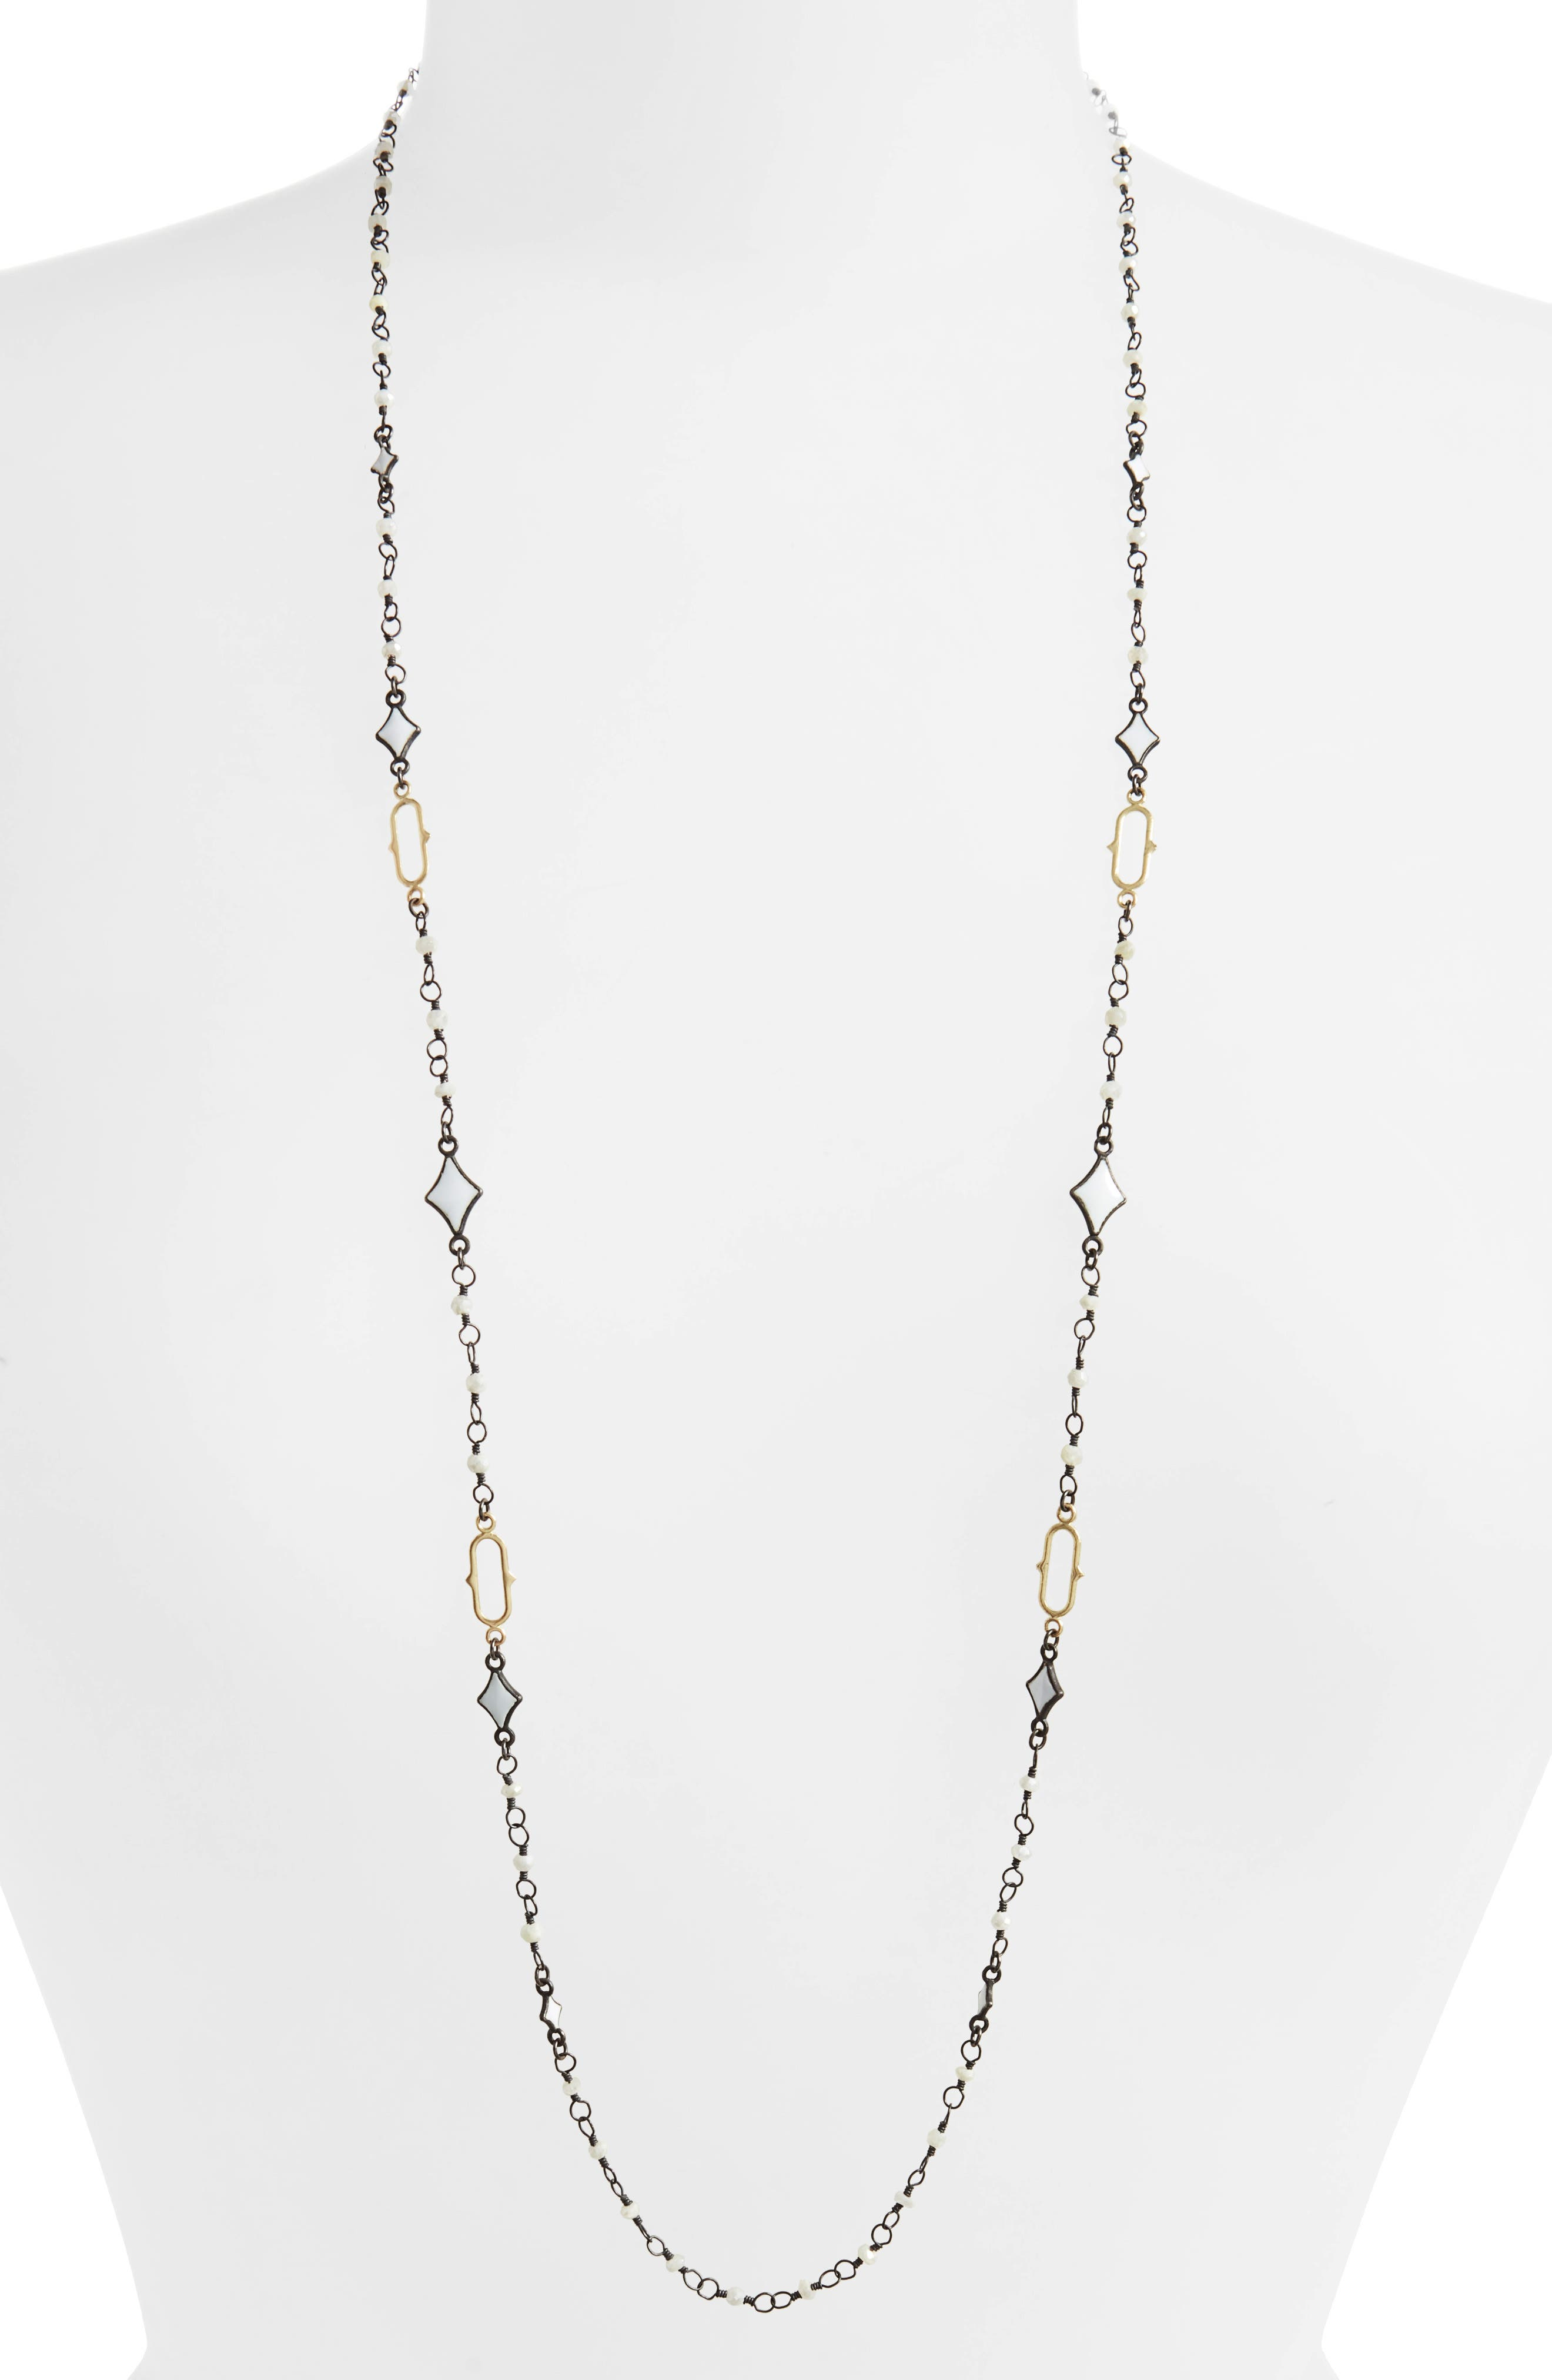 Old World Enamel Chain Necklace,                         Main,                         color, BLACKENED SILVER